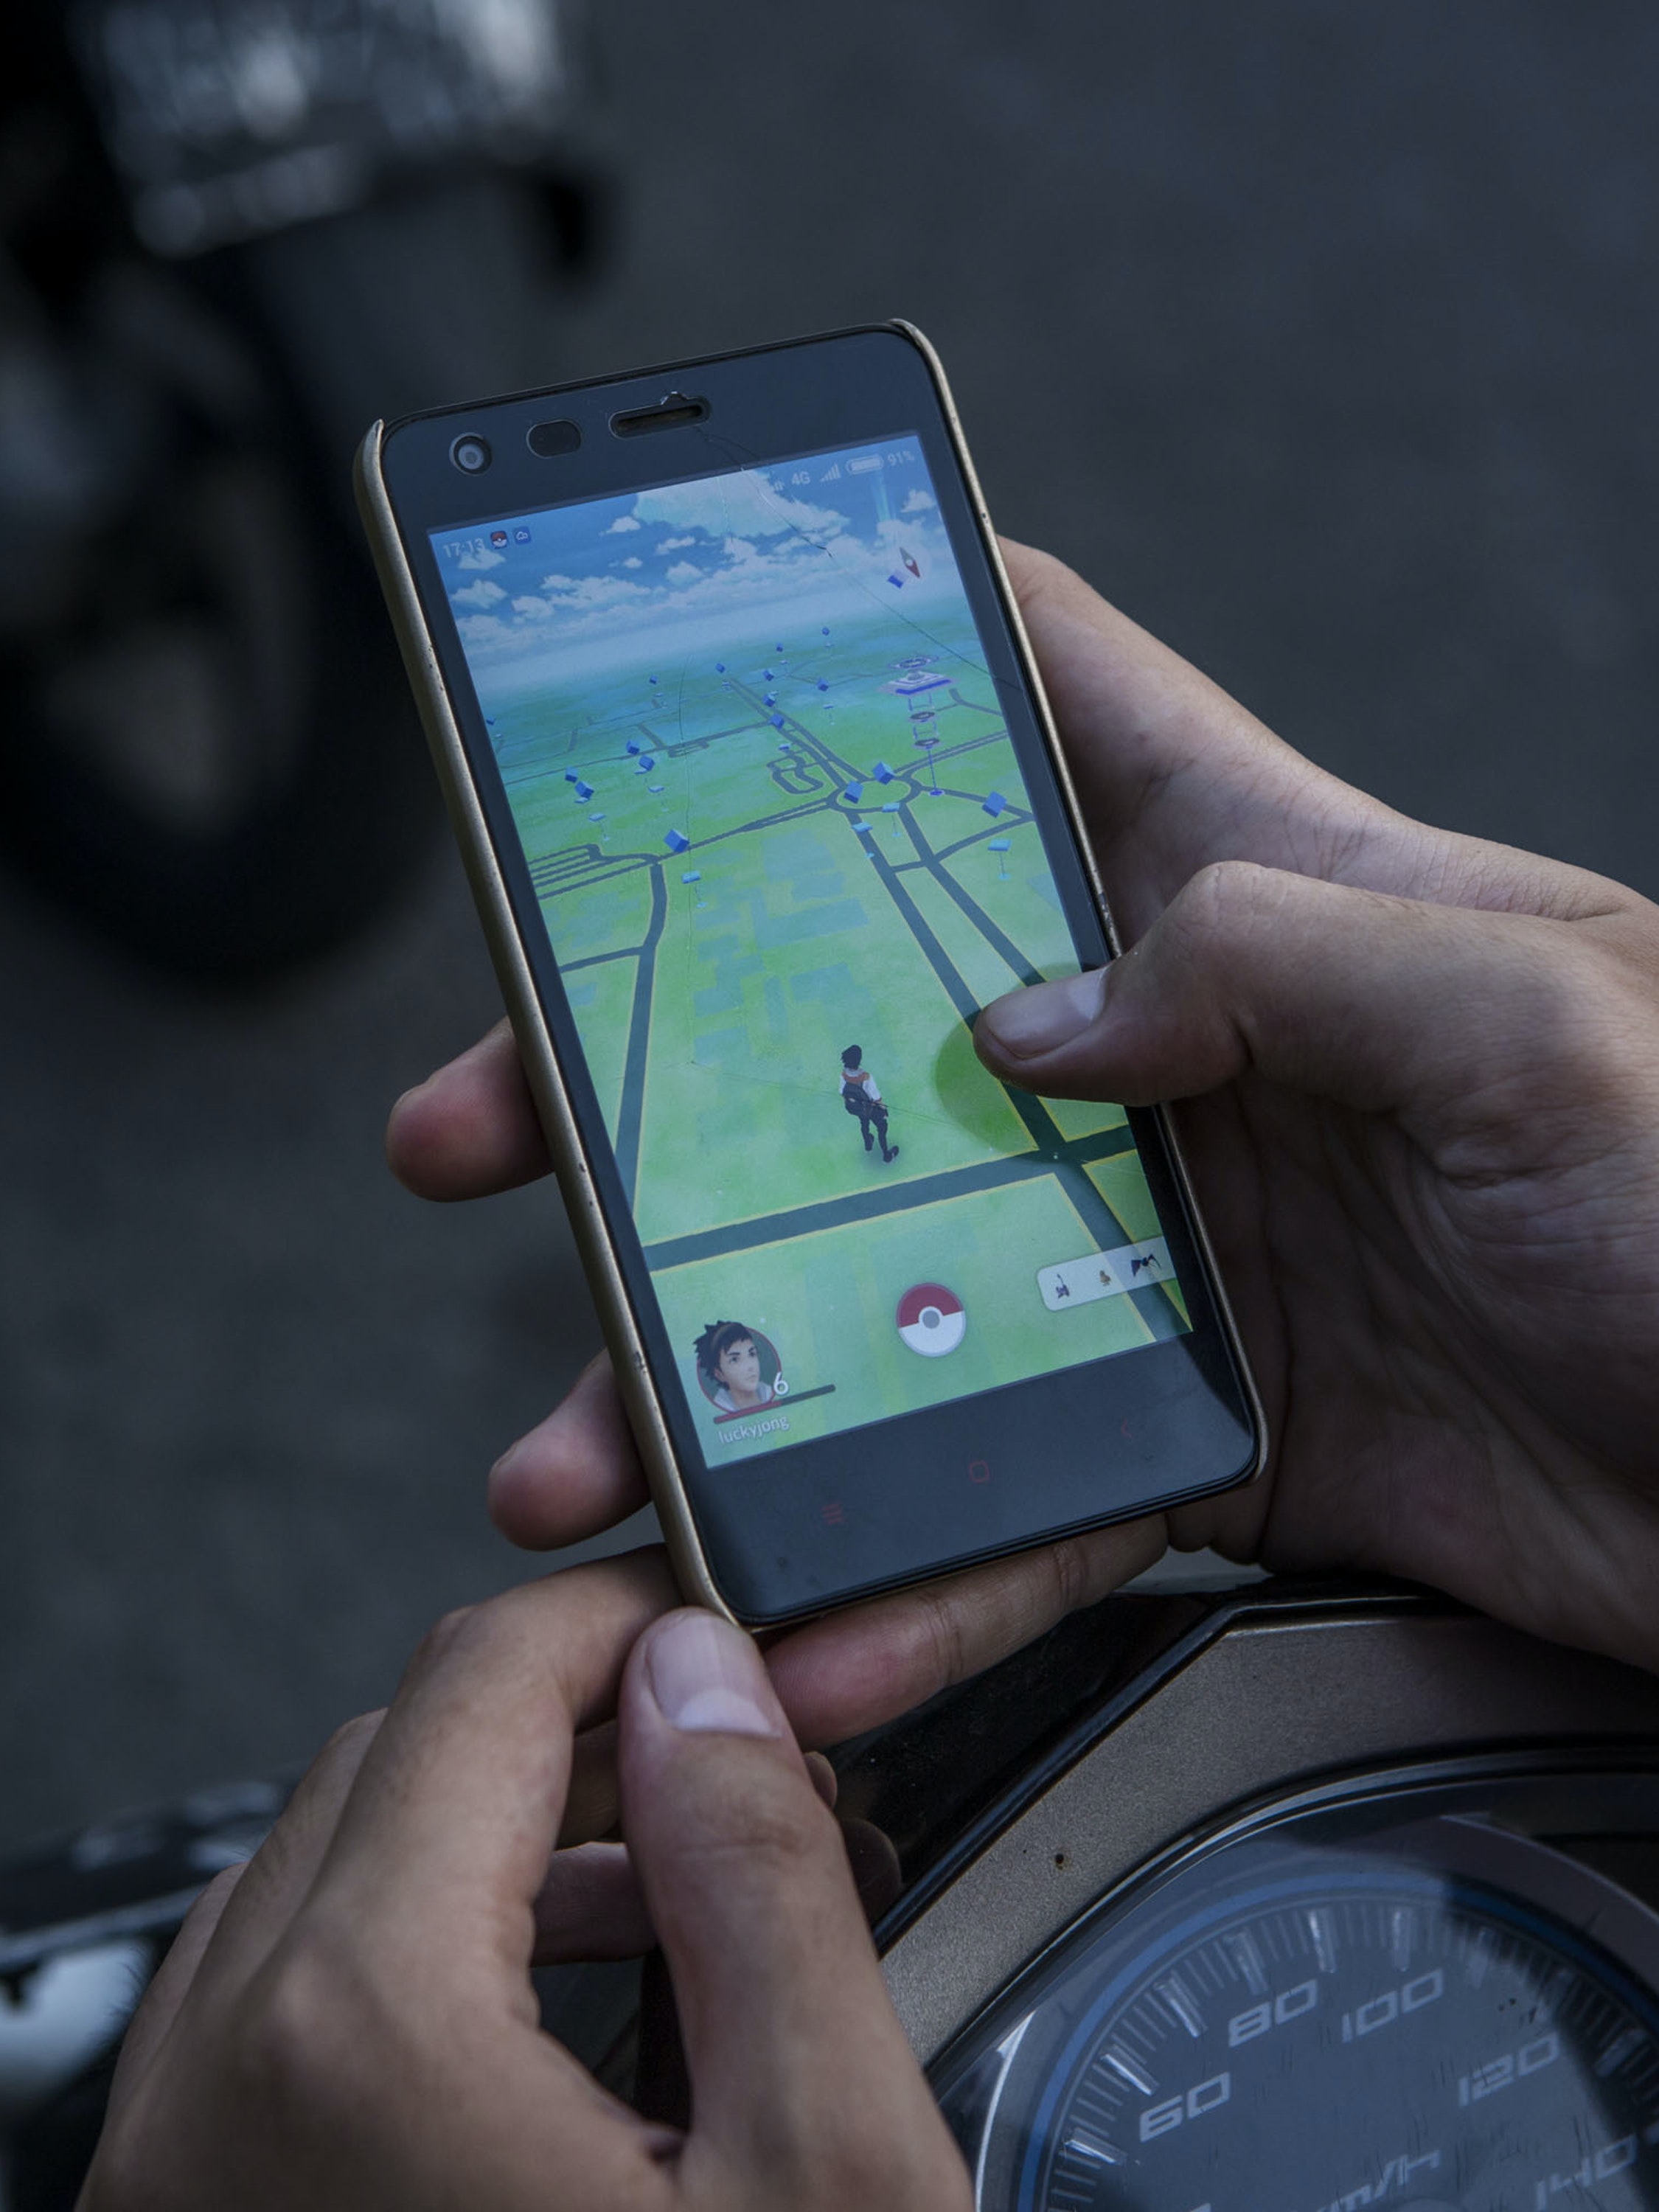 YOGYAKARTA, INDONESIA - JULY 24:  A motorcyclist, plays Pokemon Go game on his smartphone on July 24, 2016 in Yogyakarta, Indonesia. 'Pokemon Go,' which uses Google Maps and a smartphone has been a smash-hit in countries where it is available and already popular in Indonesia even though it has not been officially released. Indonesians have been downloading the game by using a proxy location which gives them access to app stores of other countries as security officials have voiced worries that the game could pose a security threat.  (Photo by Ulet Ifansasti/Getty Images)